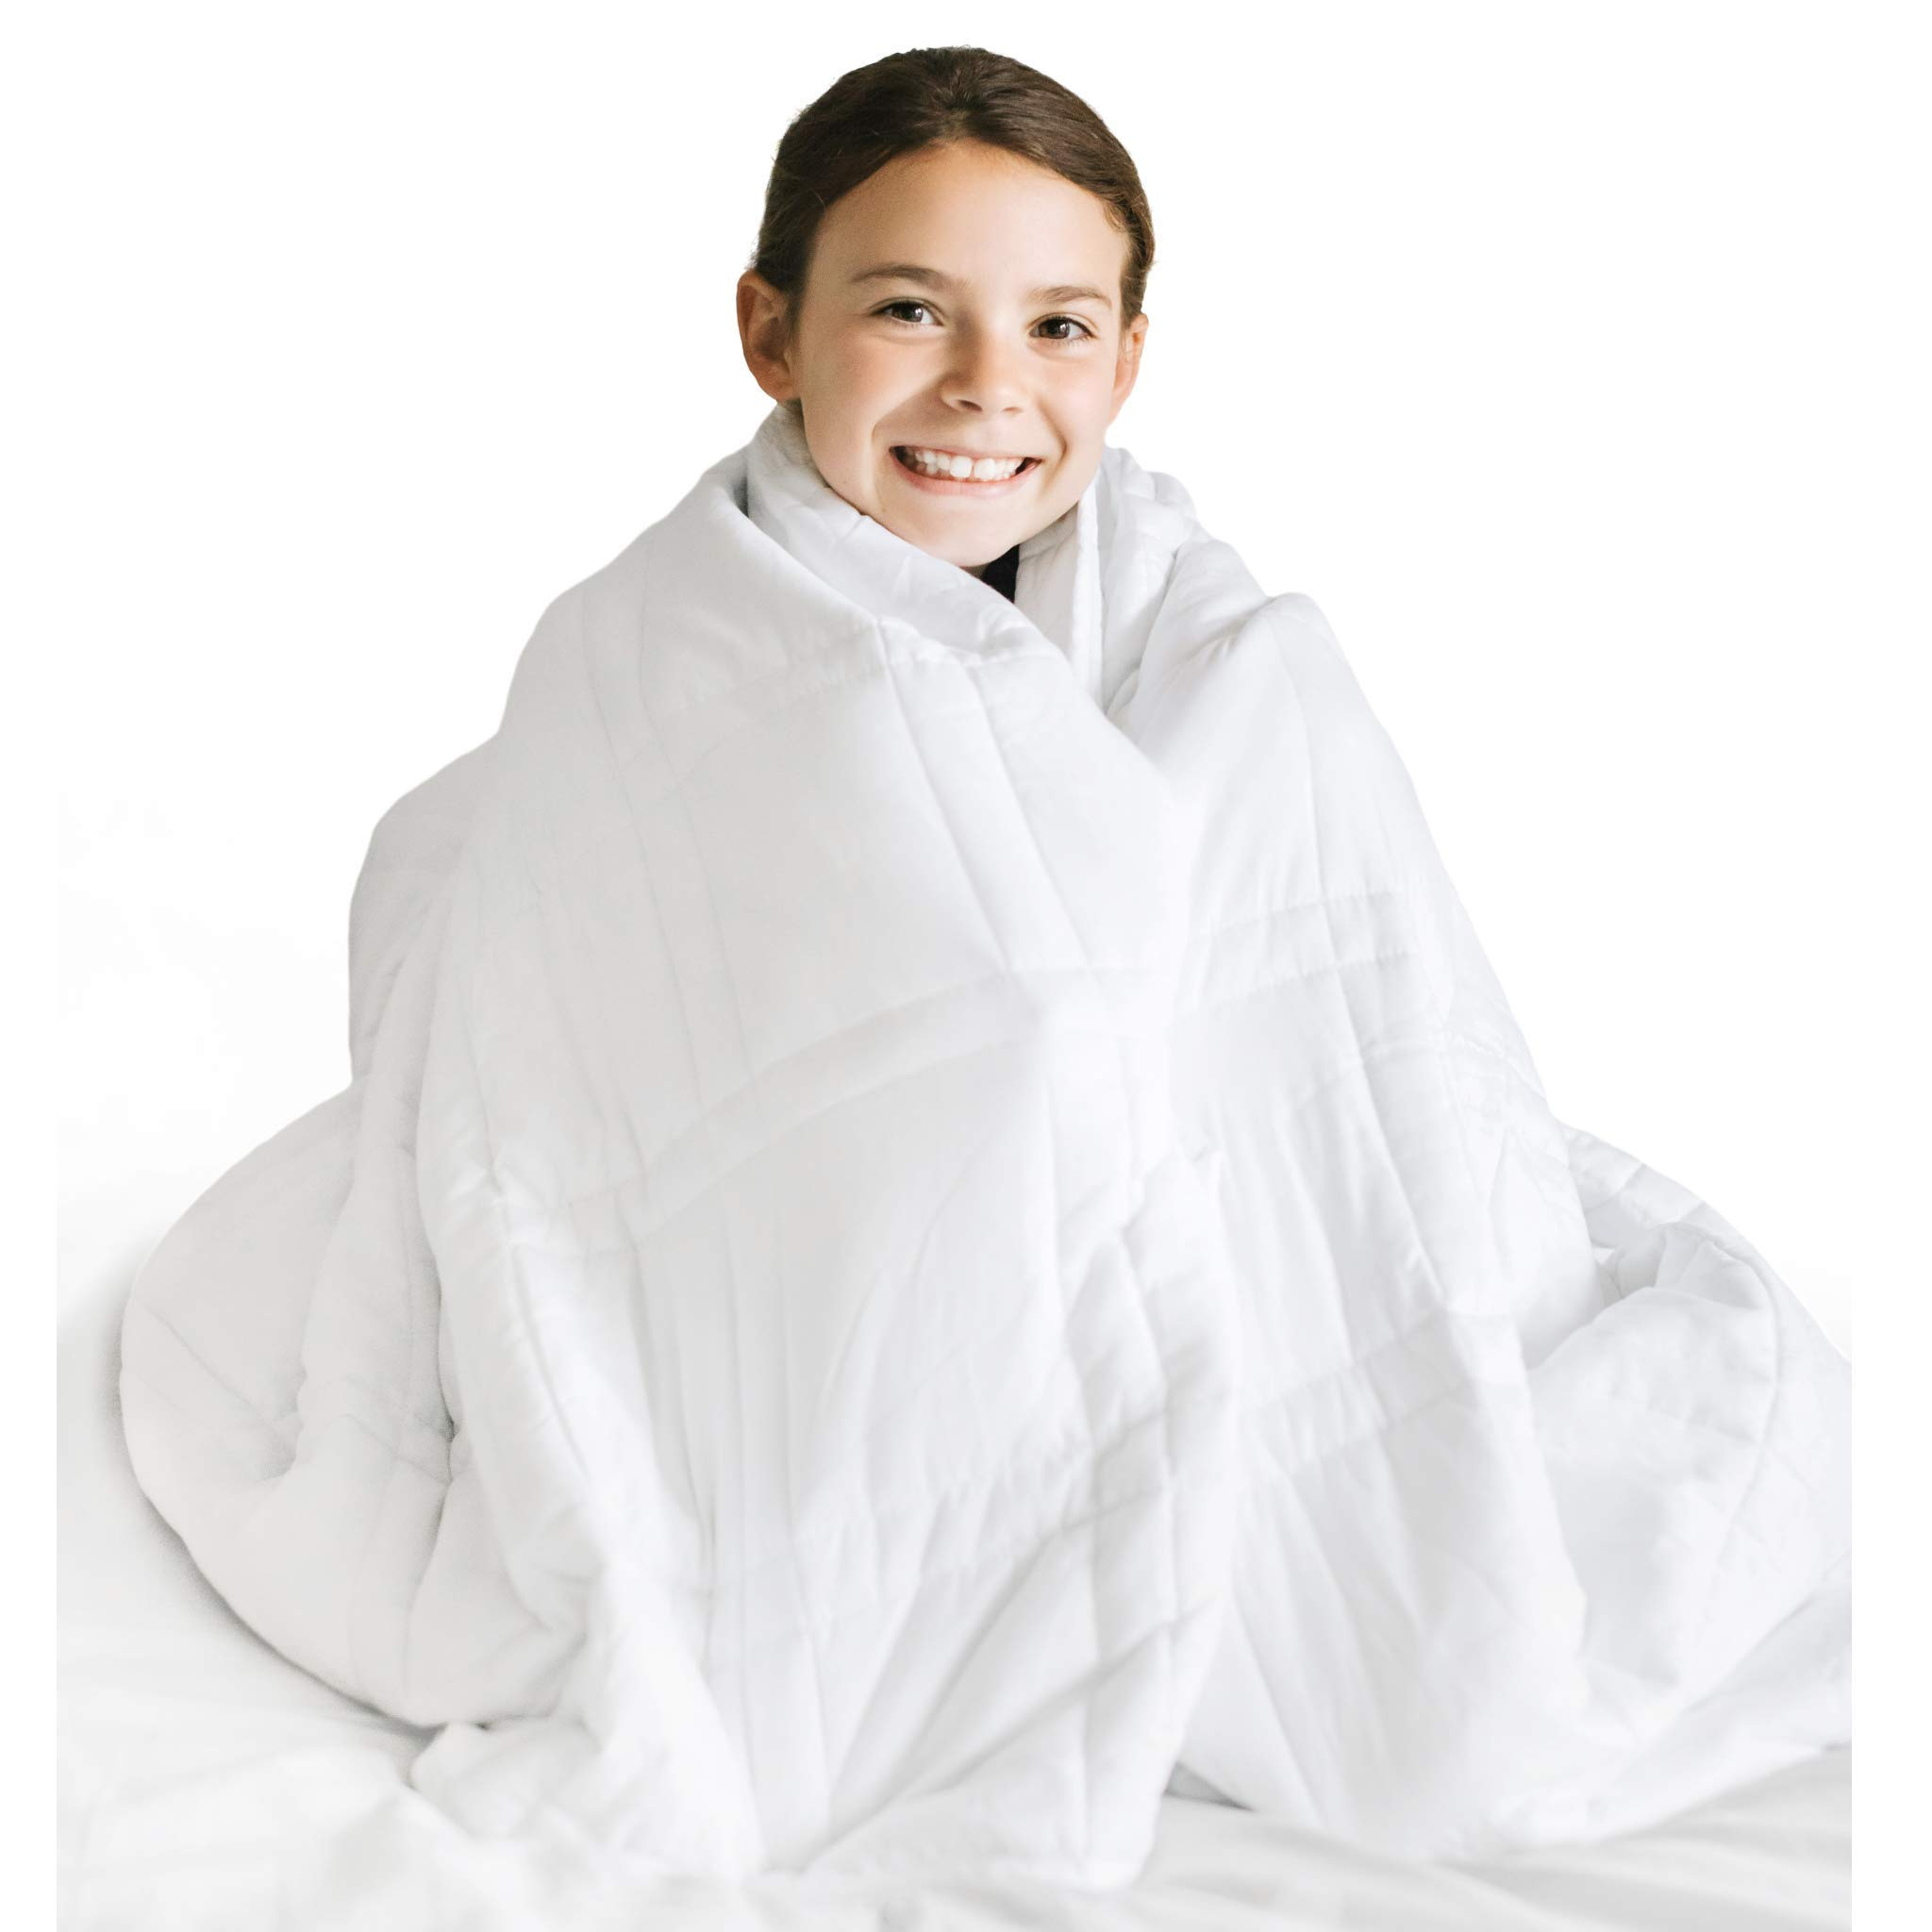 Nuzzie Cooling Weighted Blanket - 8 lbs - Twin/Full - 41x61 - Kids or Teen - 100% Soft Cotton - Hypoallergenic Glass Beads - Durable Double Stitching - Designed in USA by Nuzzie